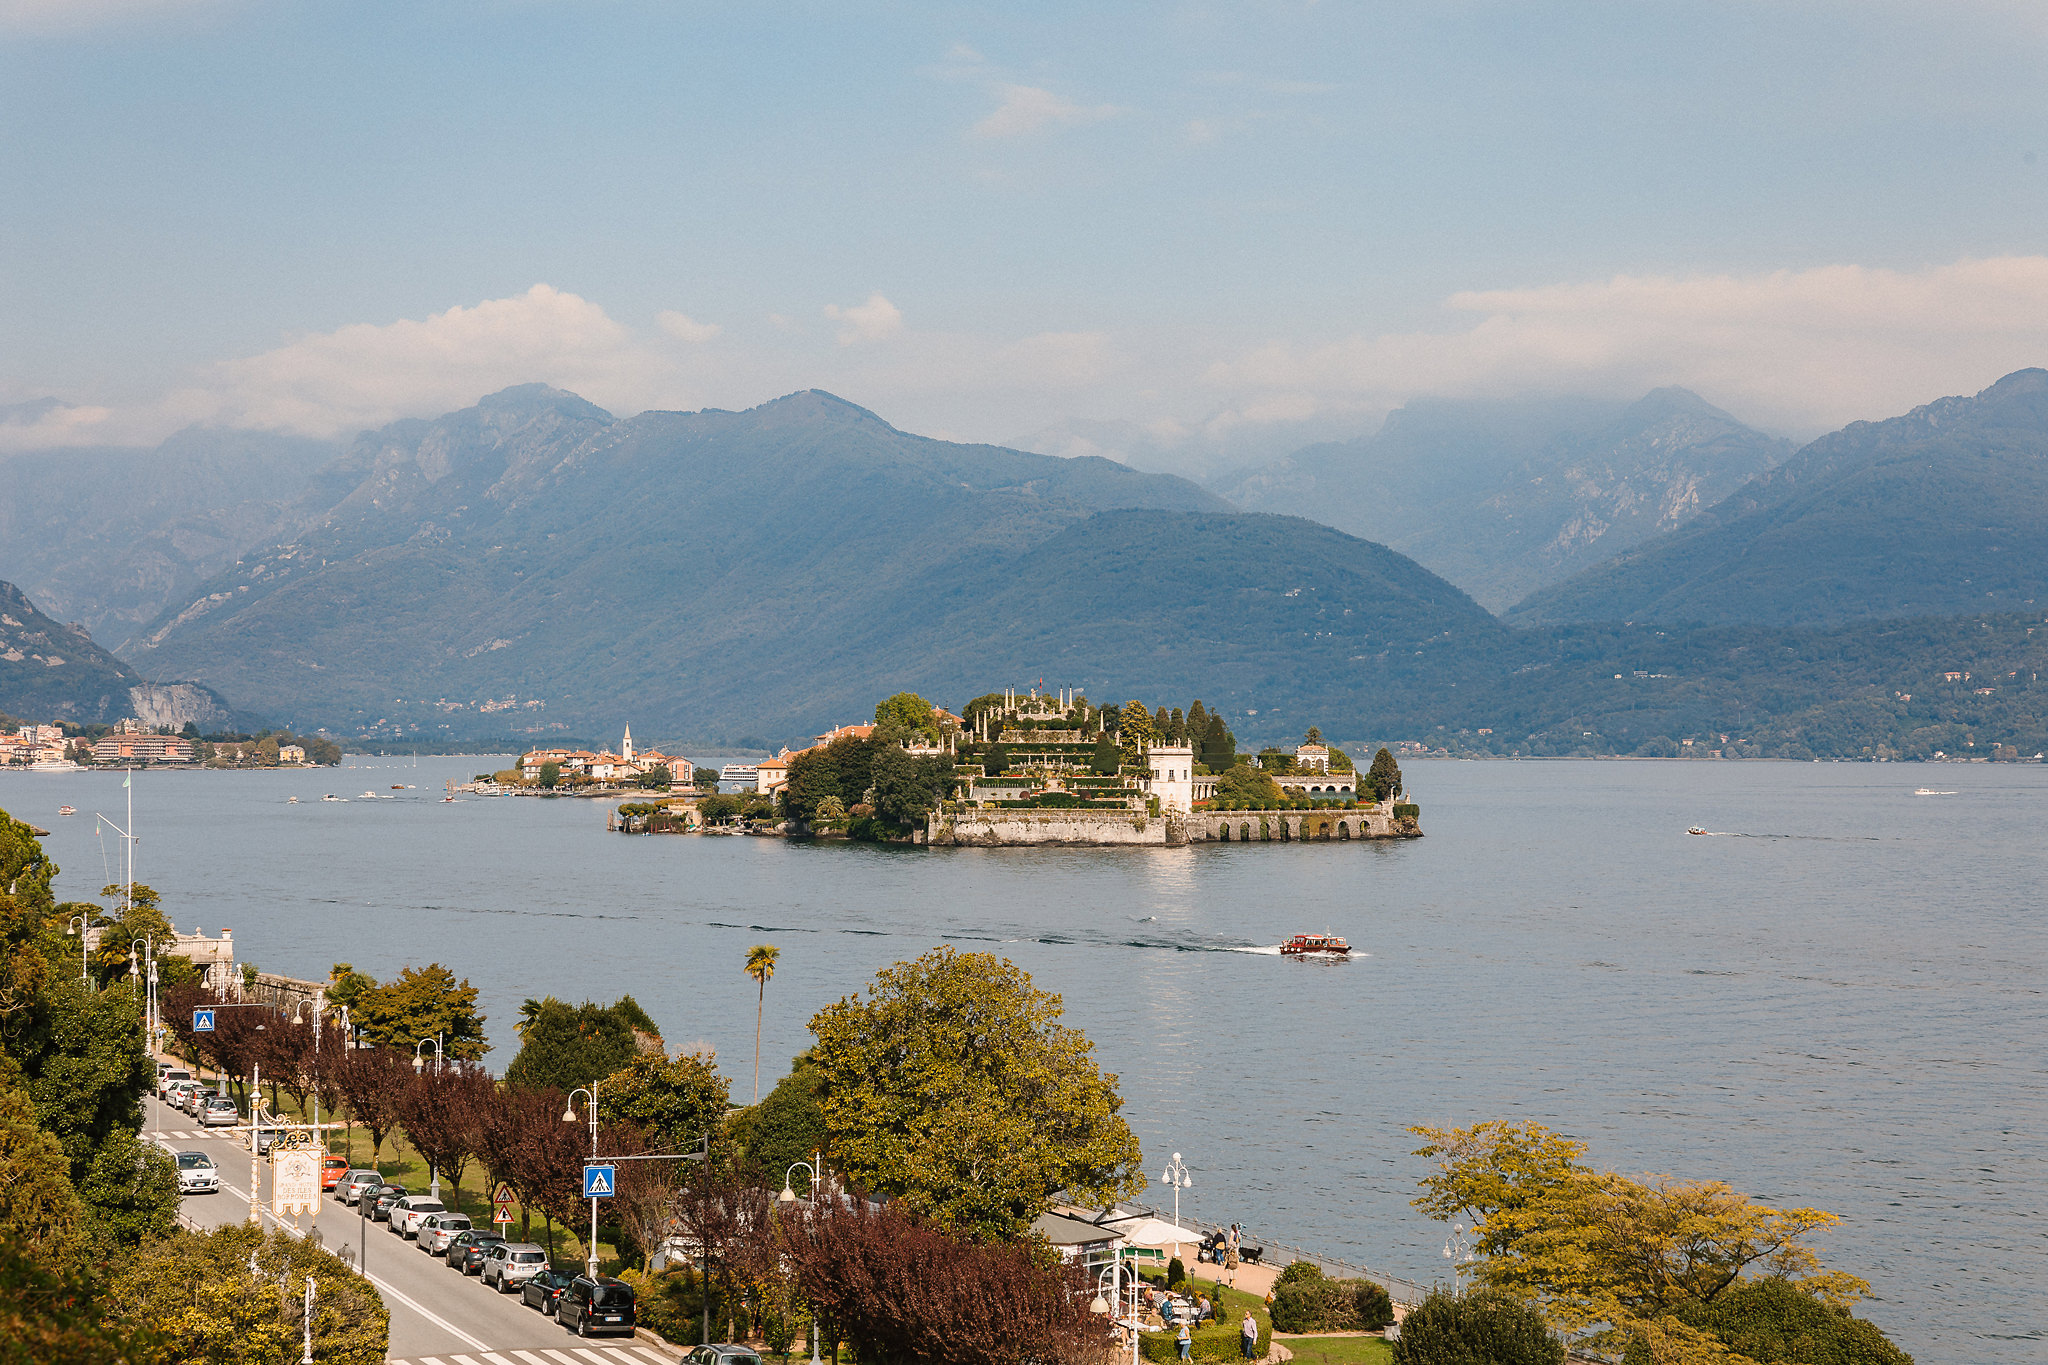 The wedding took place in the little picturesque town of Stresa, nestled among the Alps and along the beautiful Lakes of Maggiore.  The Hotel The Grand Hotel Borrommes is without a doubt the most beautiful hotel I have ever set foot in!!! The scenery from the moment you entered the town was simply breathtaking, not to mention the view from Orla's room which served as my office while I was here :) Orla couldn't have chosen a more beautiful location.